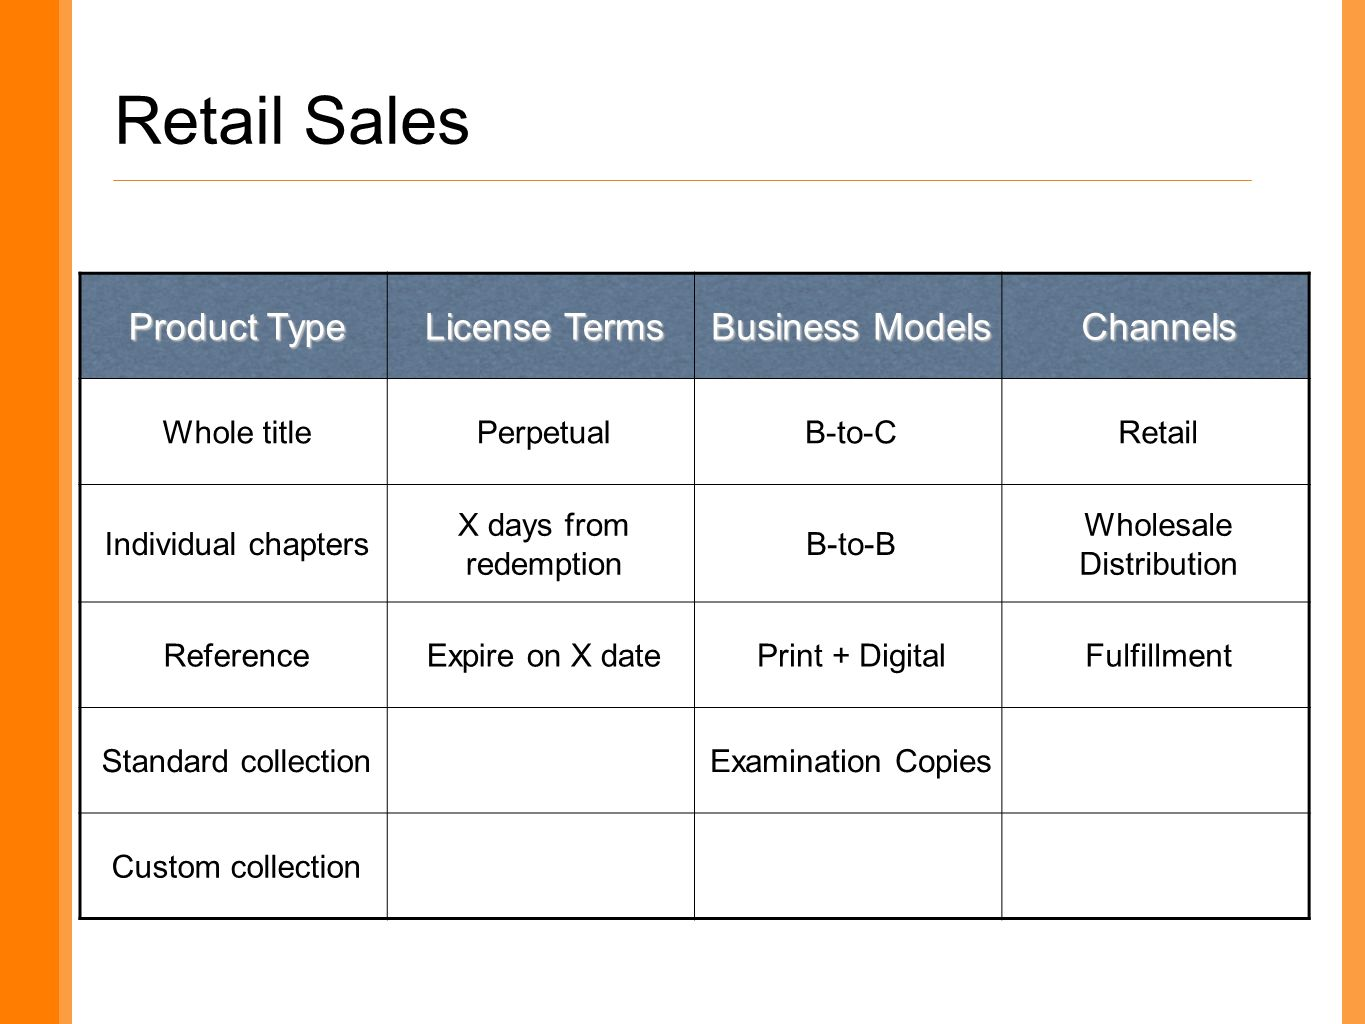 Retail Sales Product Type License Terms Business Models Channels Whole titlePerpetualB-to-CRetail Individual chapters X days from redemption B-to-B Wholesale Distribution ReferenceExpire on X datePrint + DigitalFulfillment Standard collectionExamination Copies Custom collection